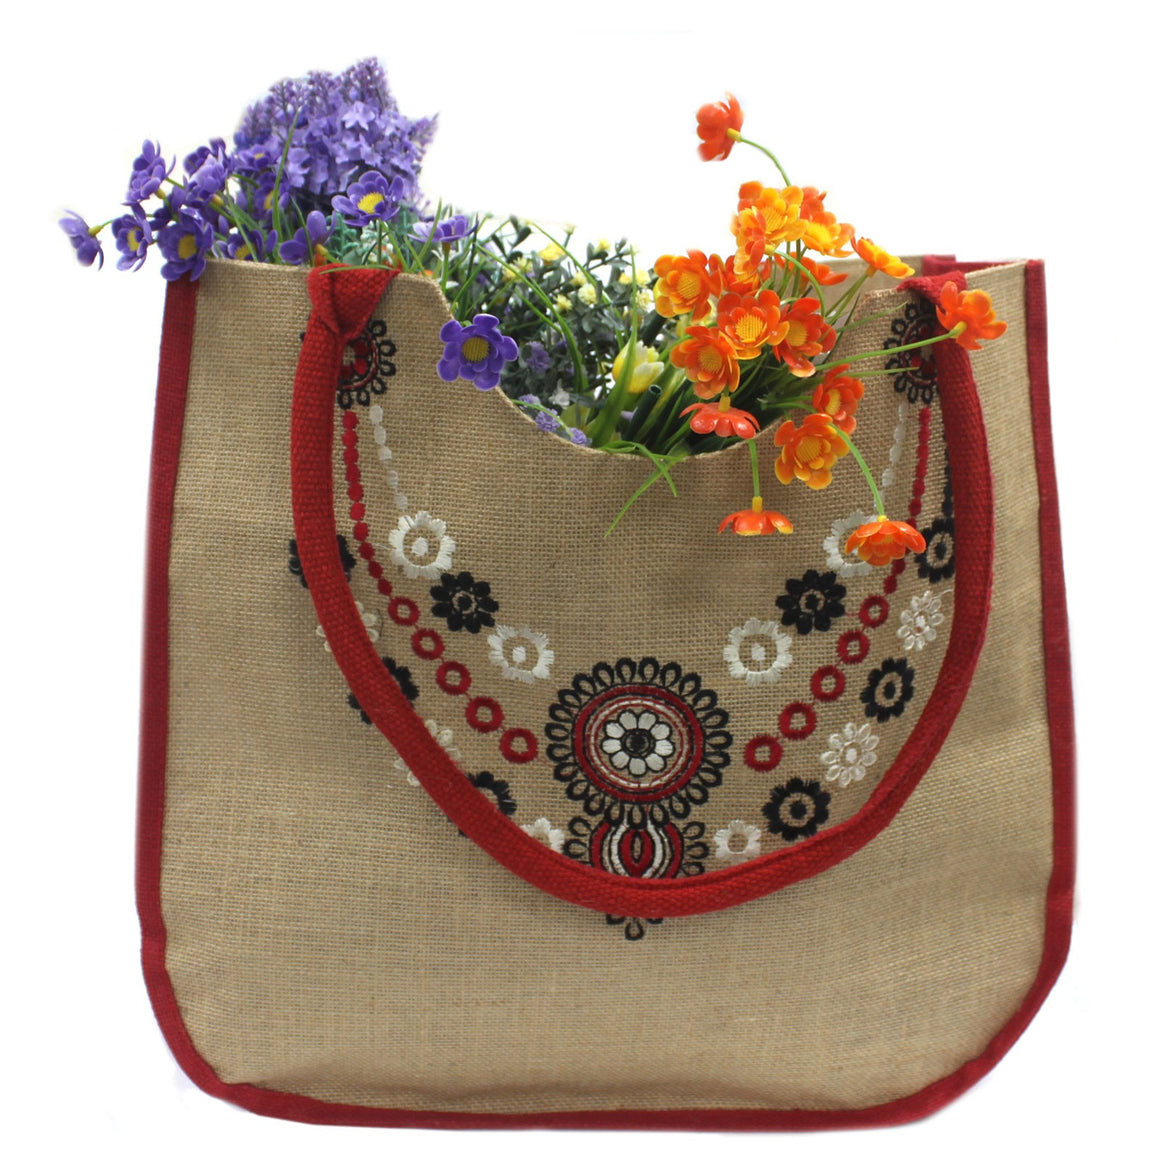 Floral Motif Jute Shopping Bag